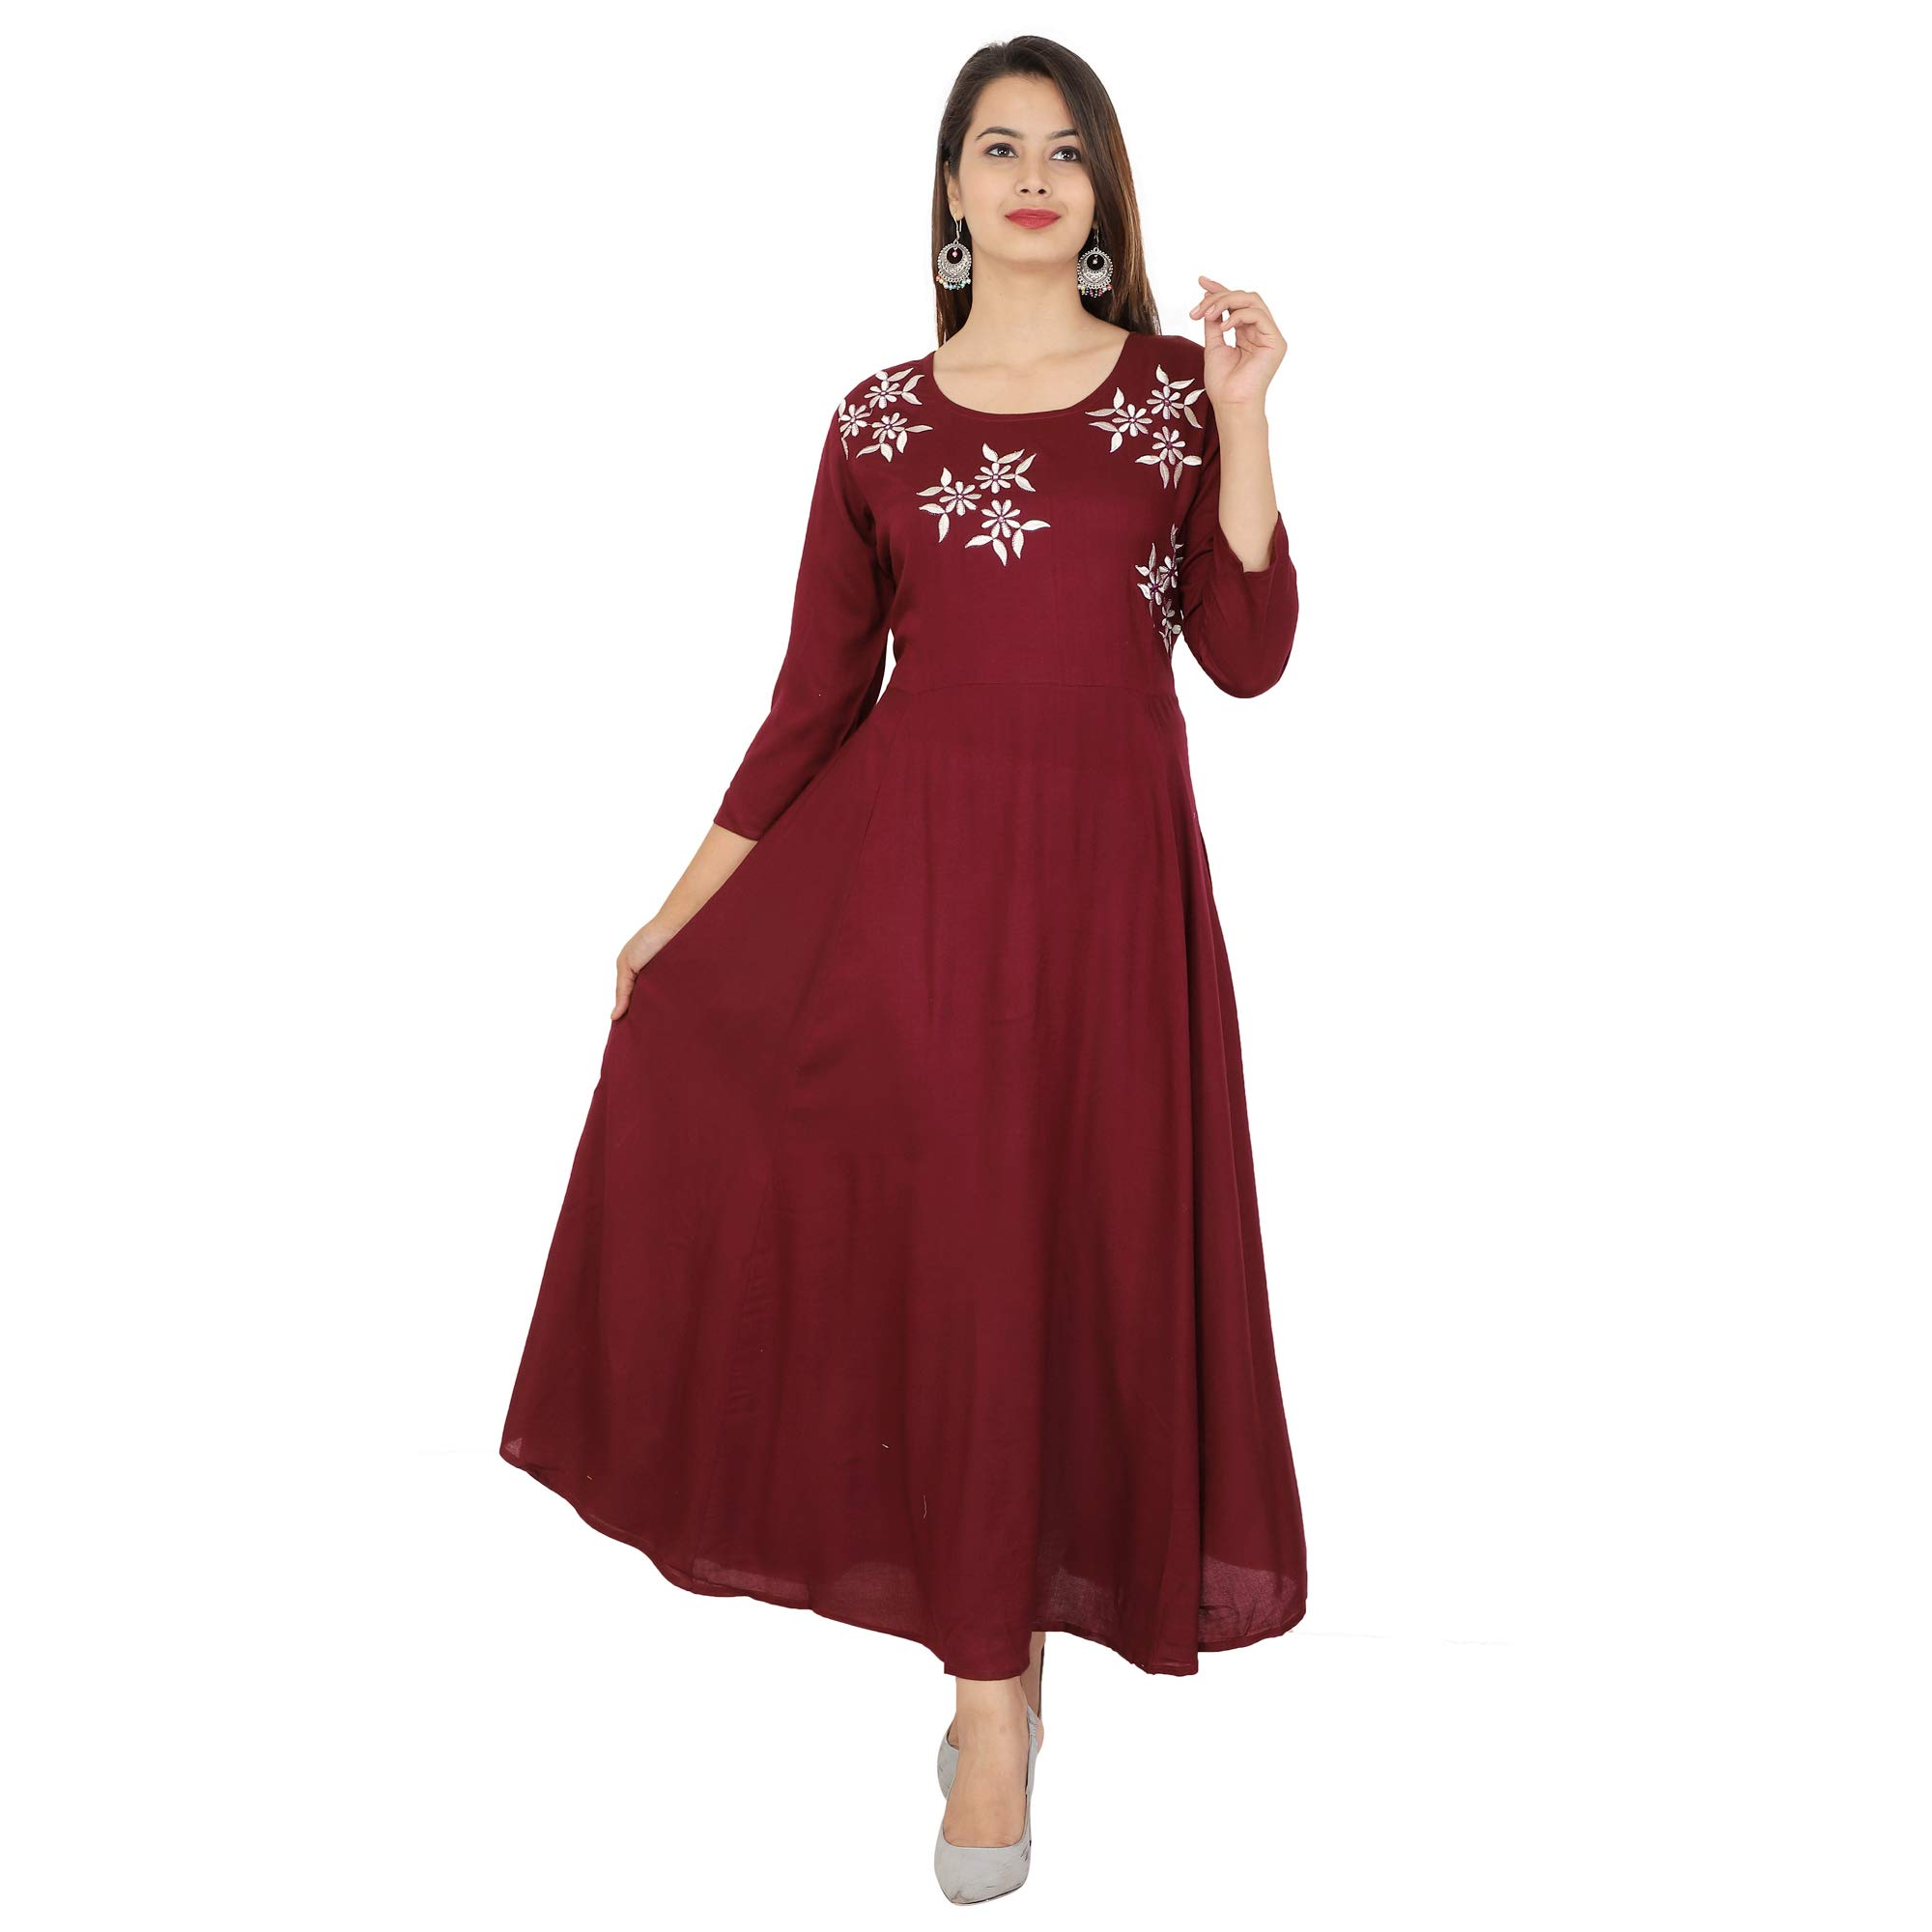 Cottonwalas Women's Rayon Embroidered Ankle Length Anarkali Kurti (Maroon) product image